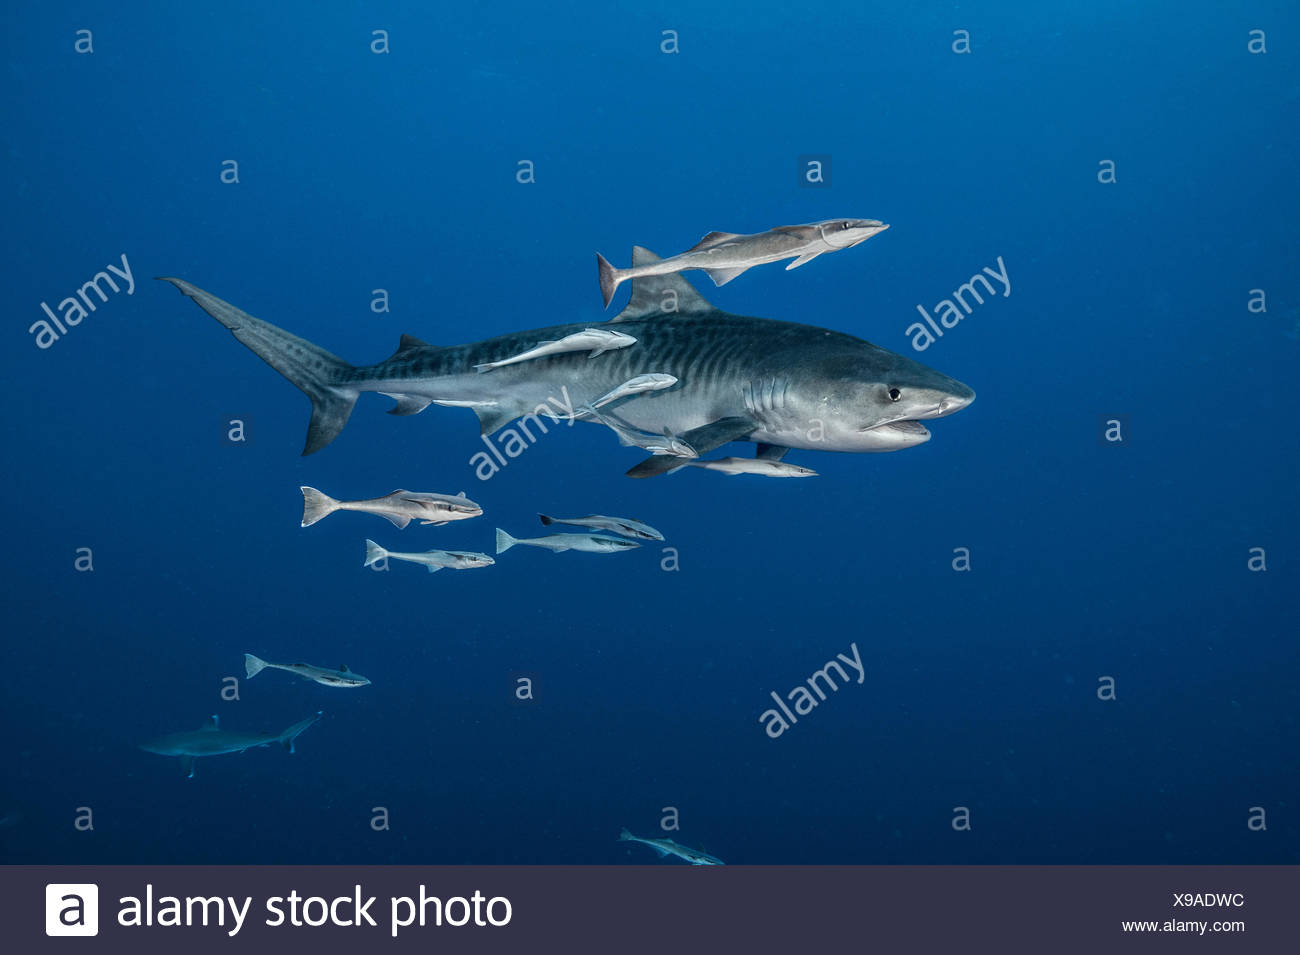 Above a reef deep in the Indian Ocean, a tiger shark is trailed by remoras. - Stock Image